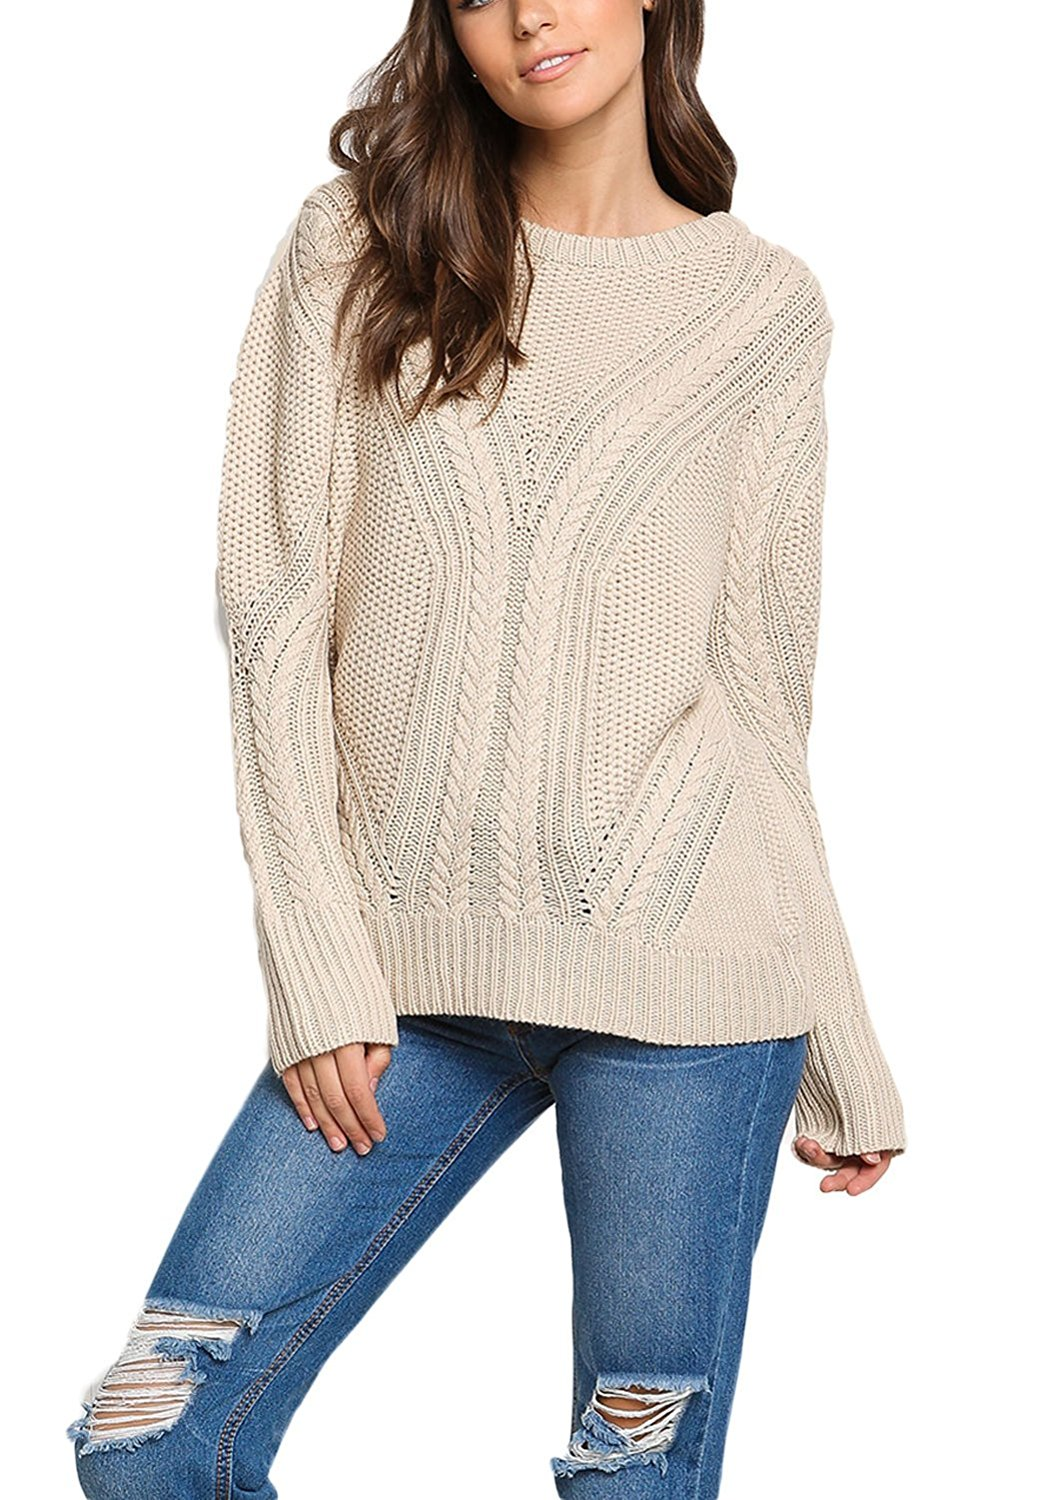 Cheap Chunky Knit Sweater Patterns Free, find Chunky Knit Sweater ...